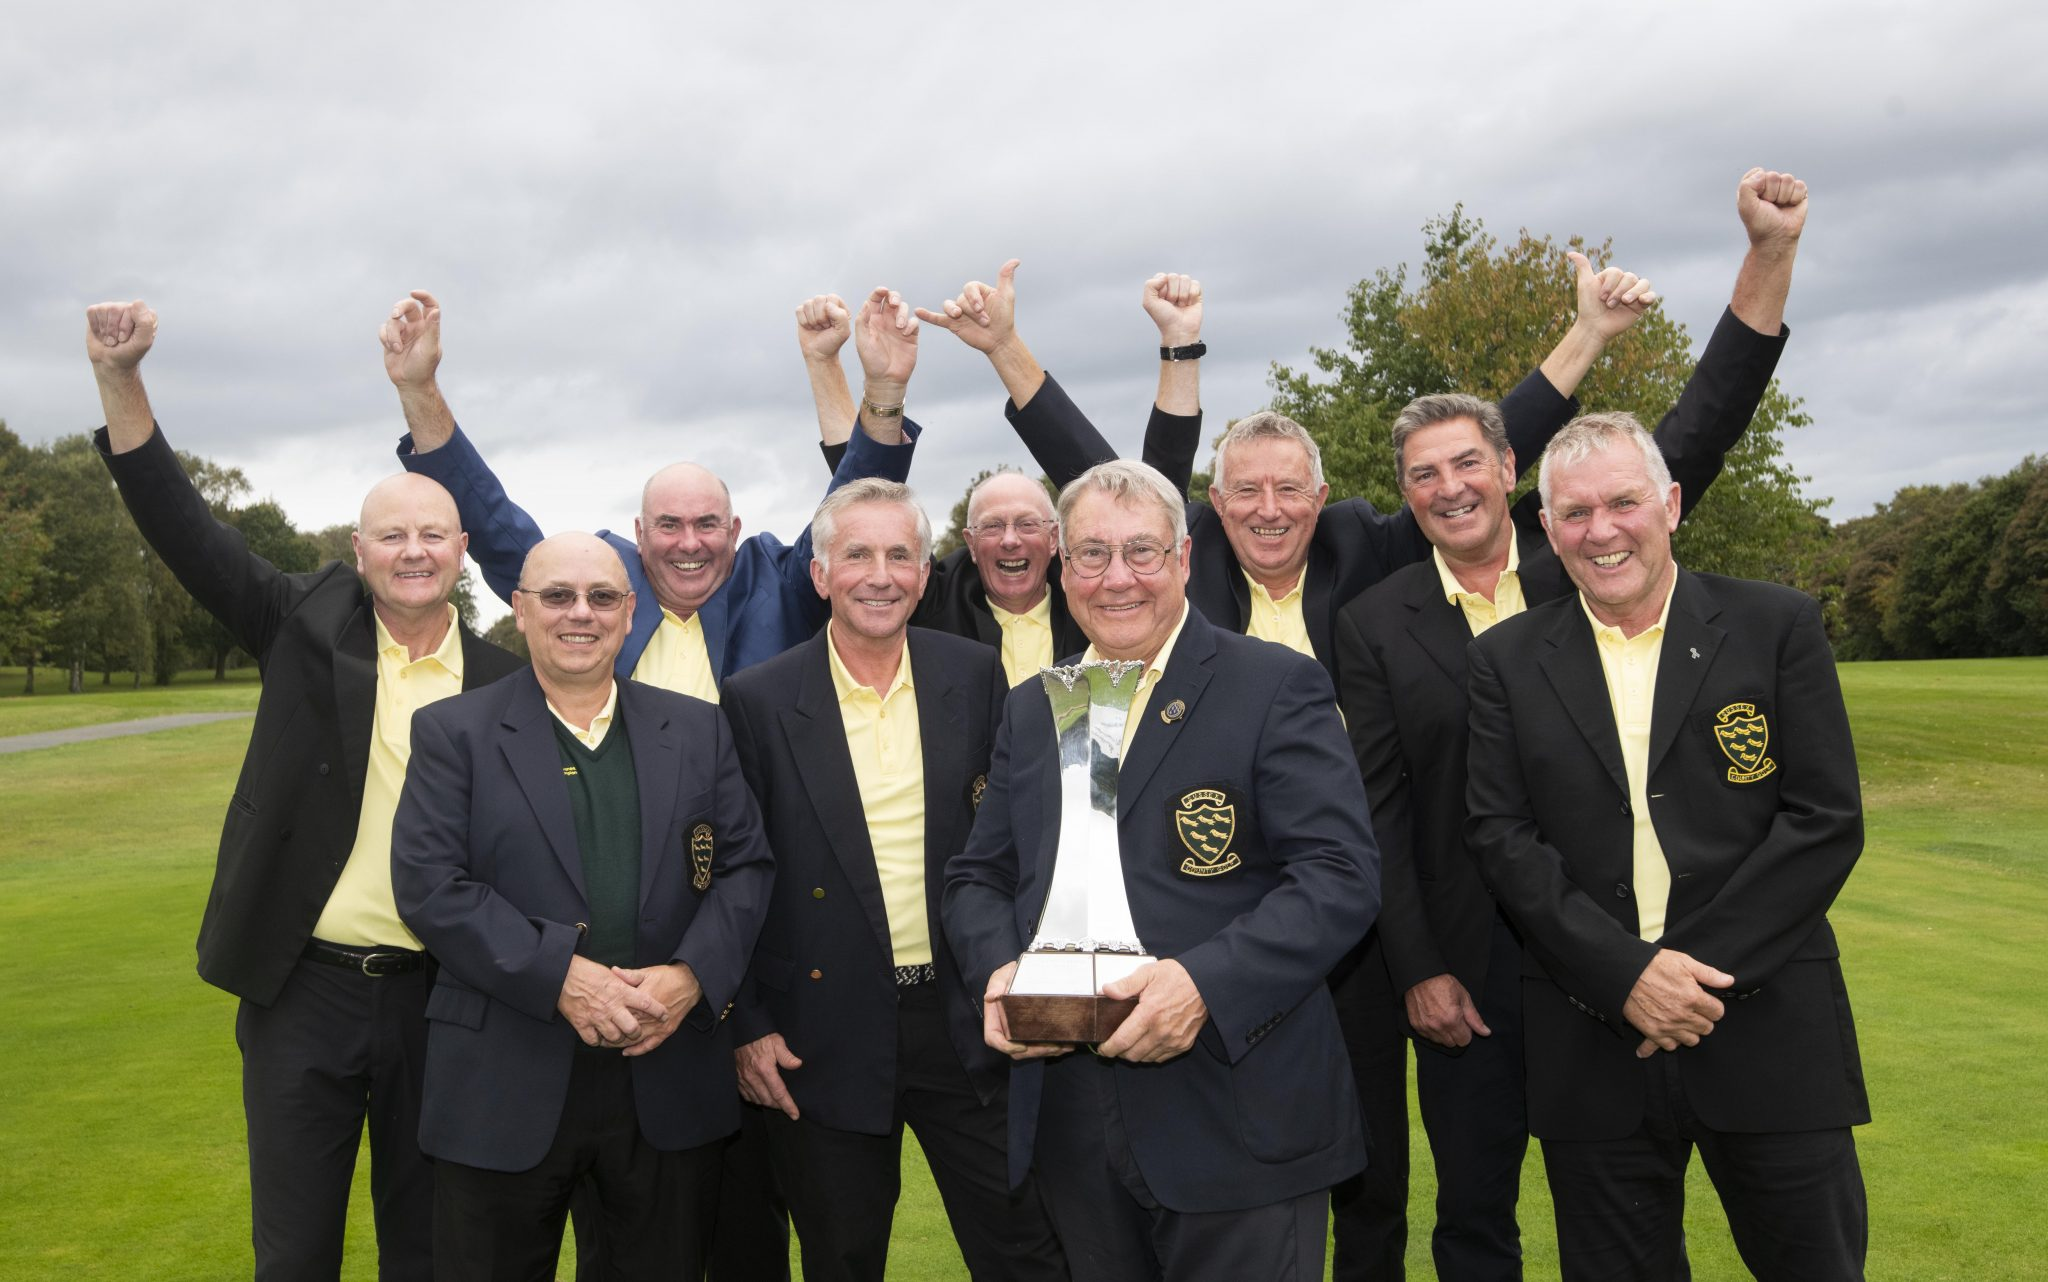 Senior Men's County Finals: Sussex crowned champions